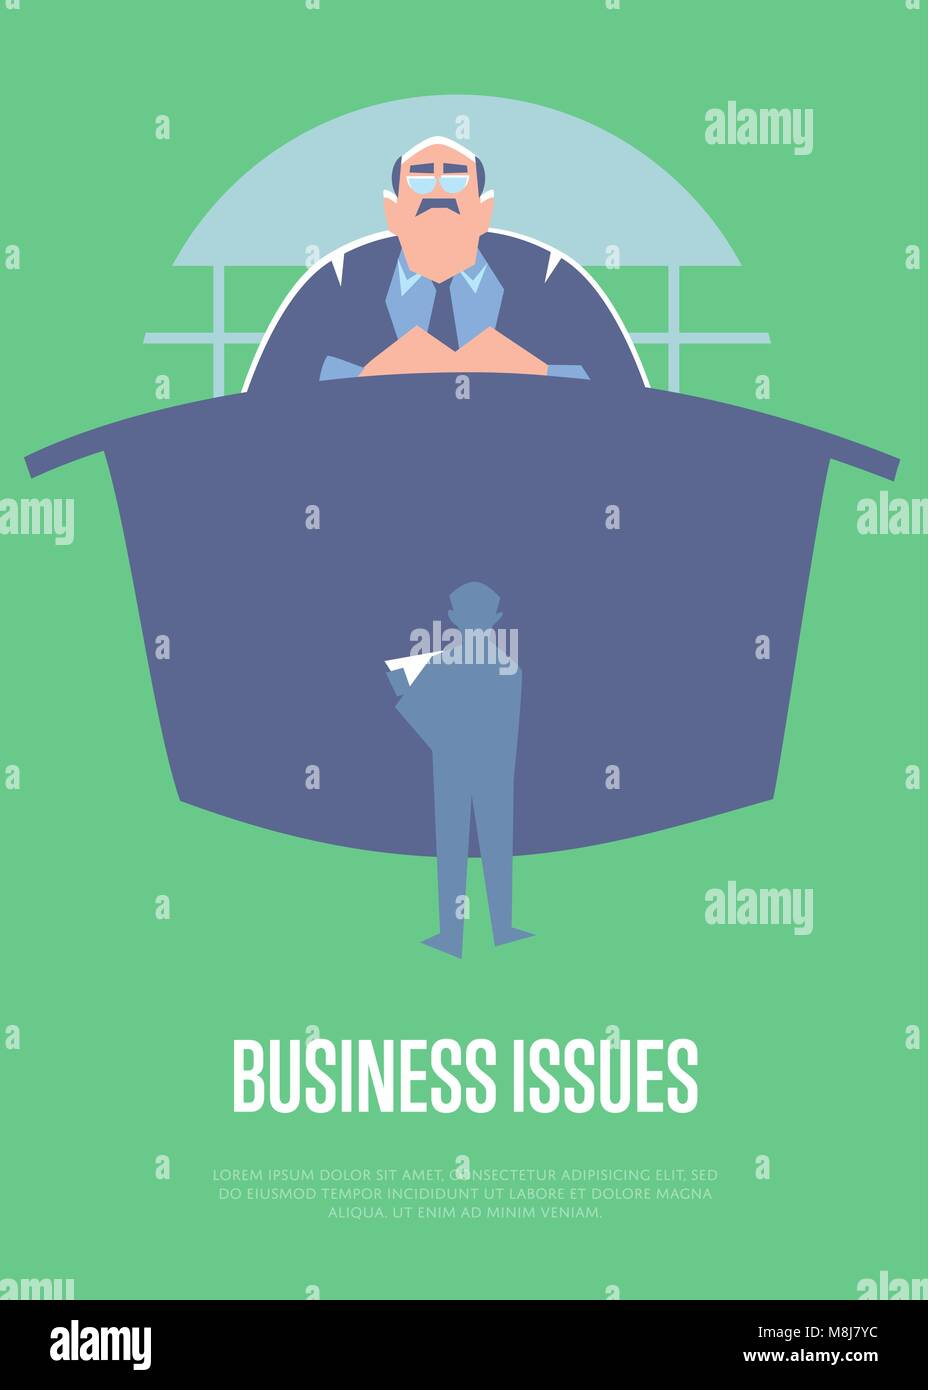 Business issues banner with big boss - Stock Vector